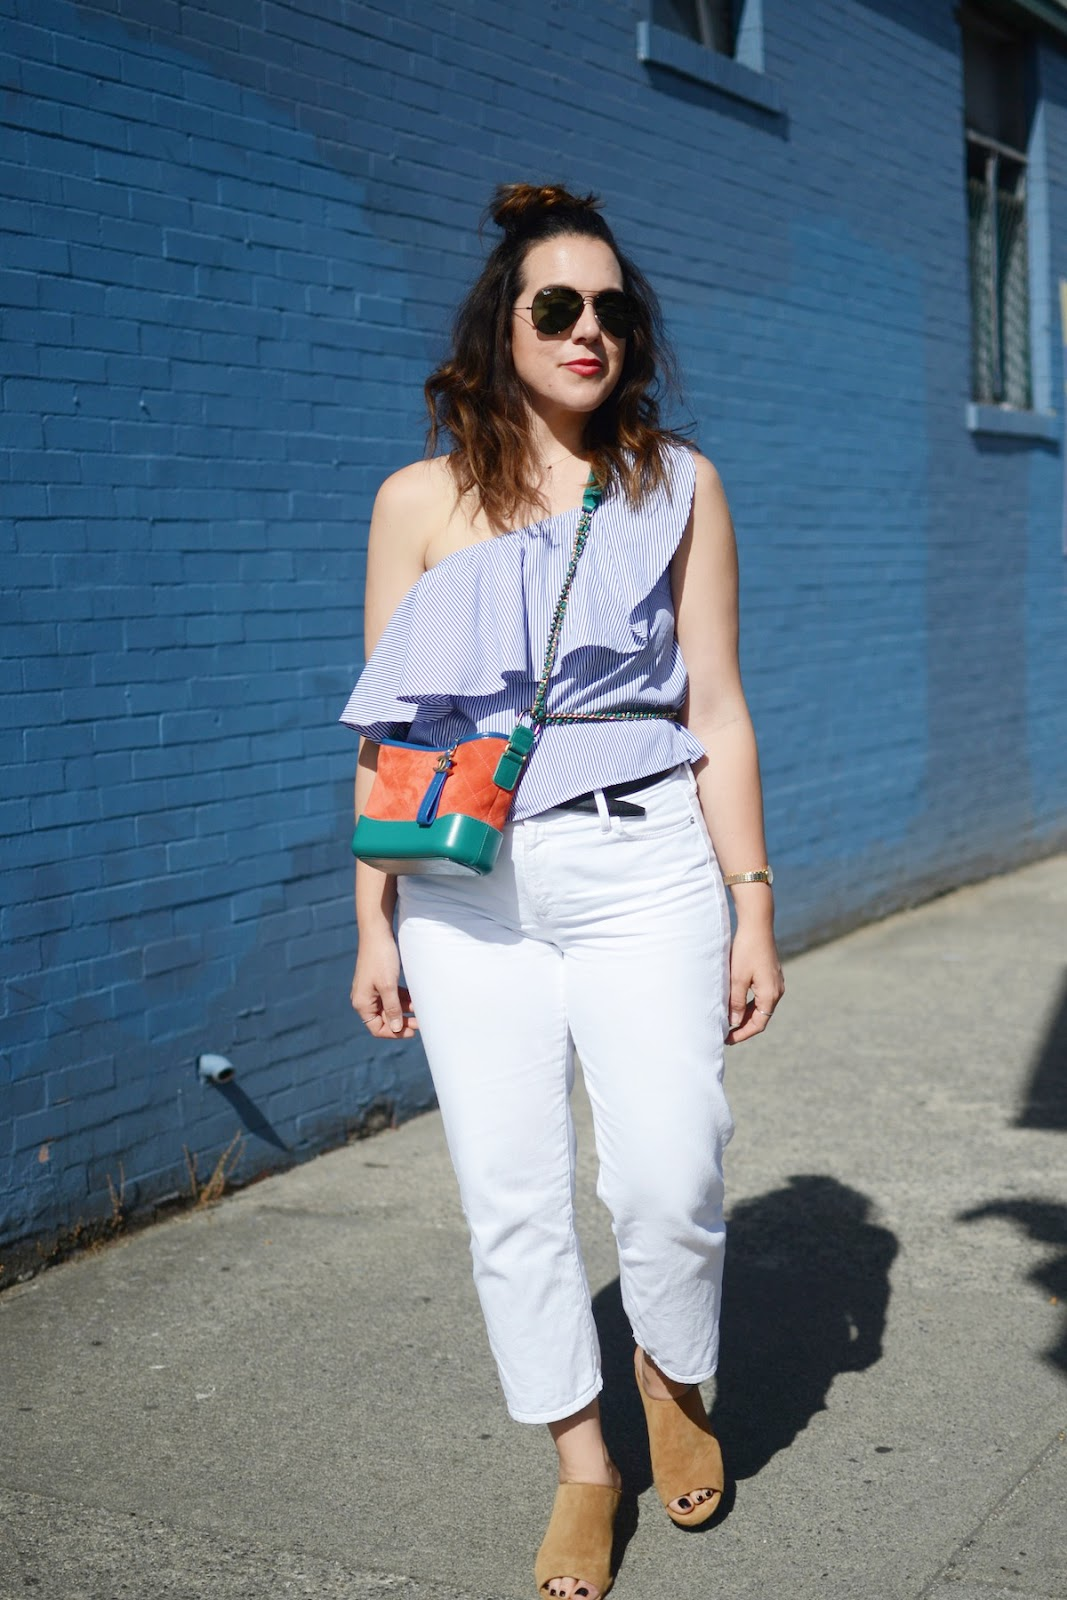 Small CHANEL Gabrielle bag striped shirt outfit summer date outfit vancouver fashion blogger